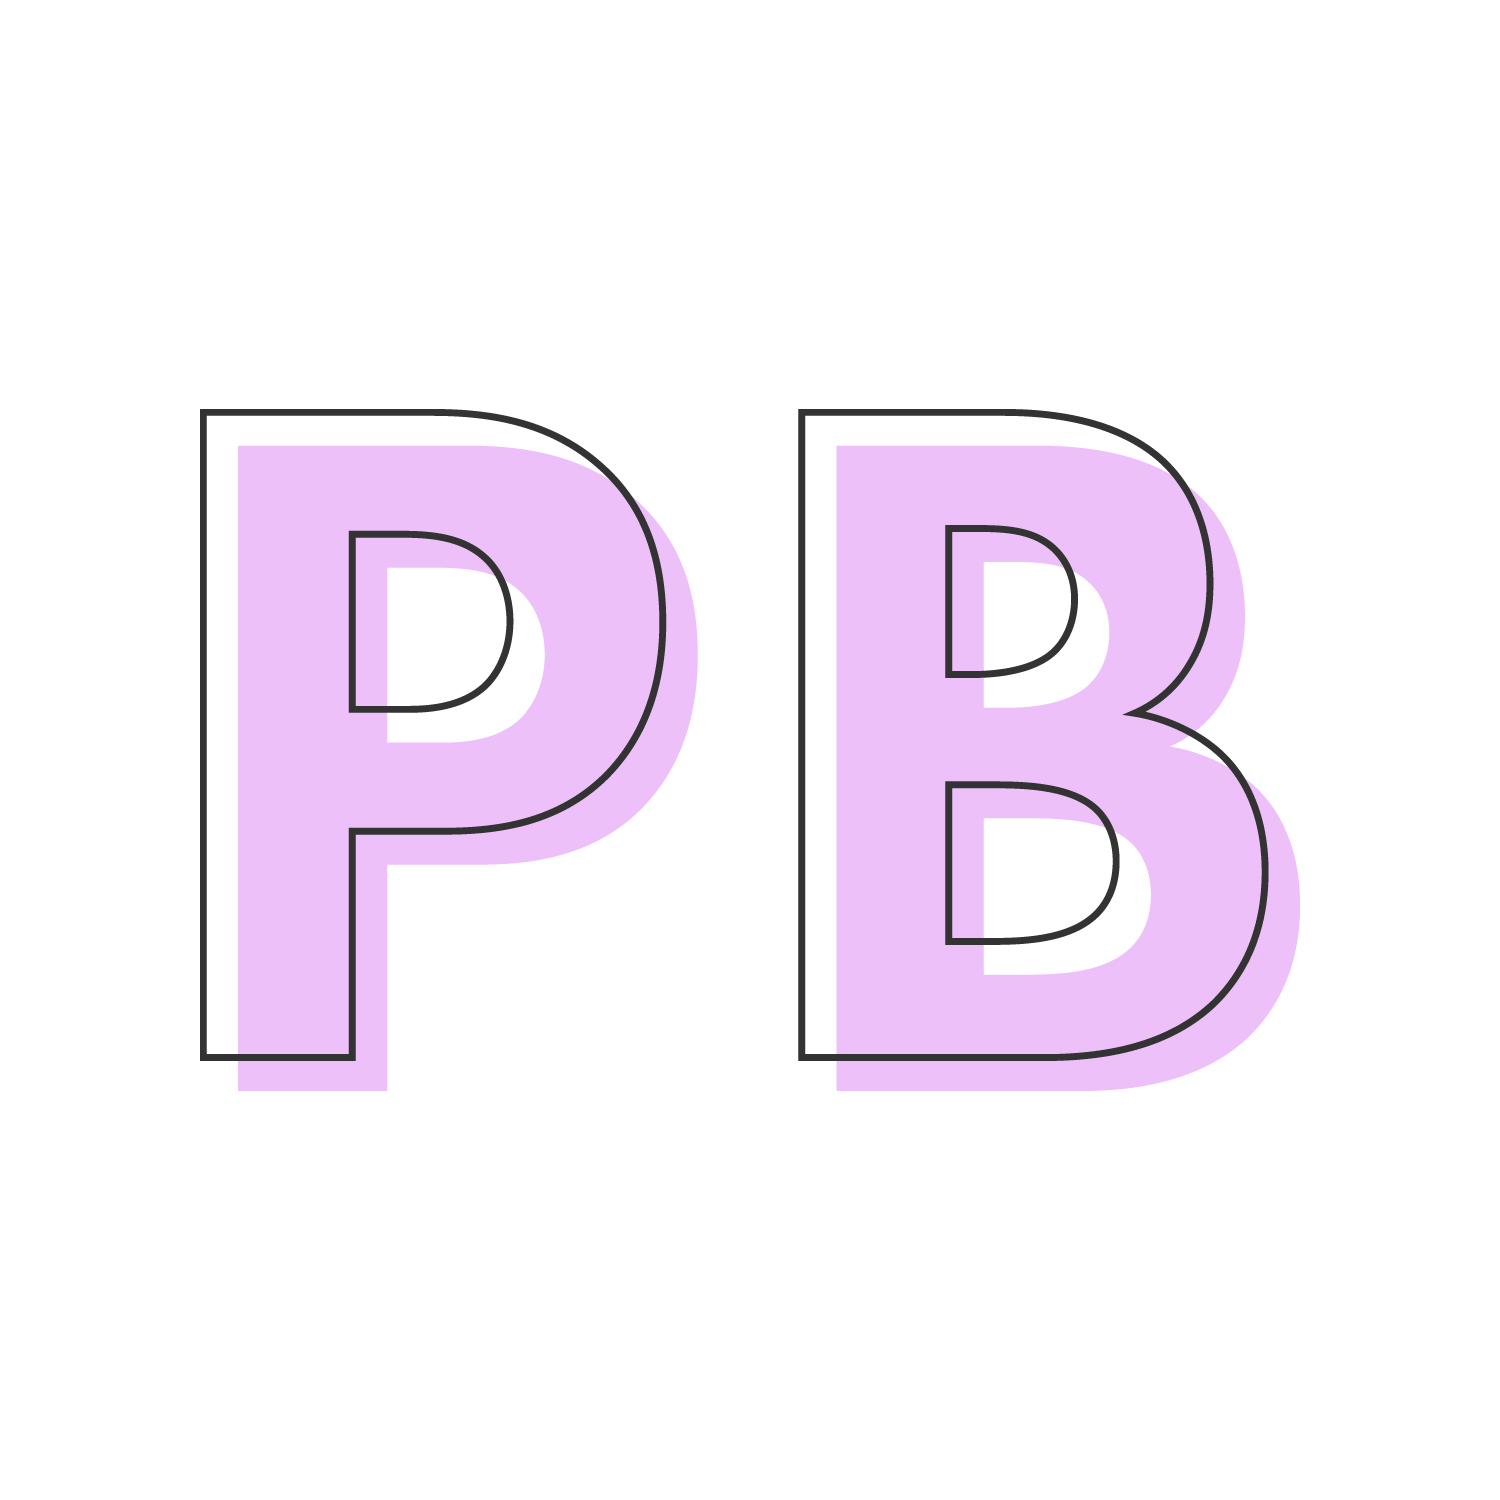 Letters 'P' and 'B' in pink.